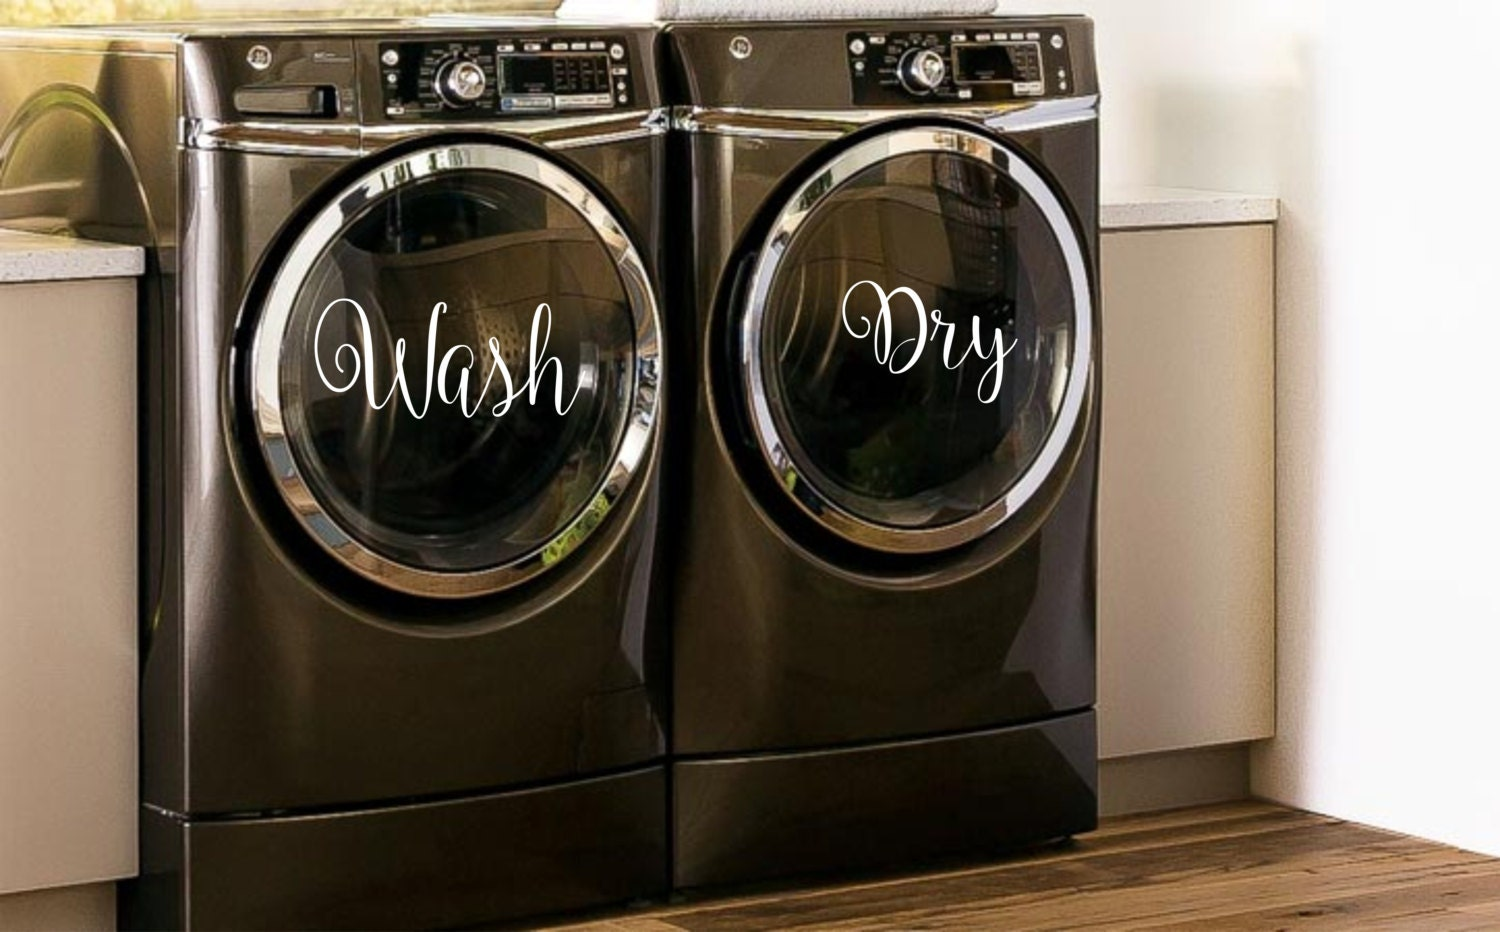 Wash Amp Dry Decals For Washers And Dryers Laundry Room Decor